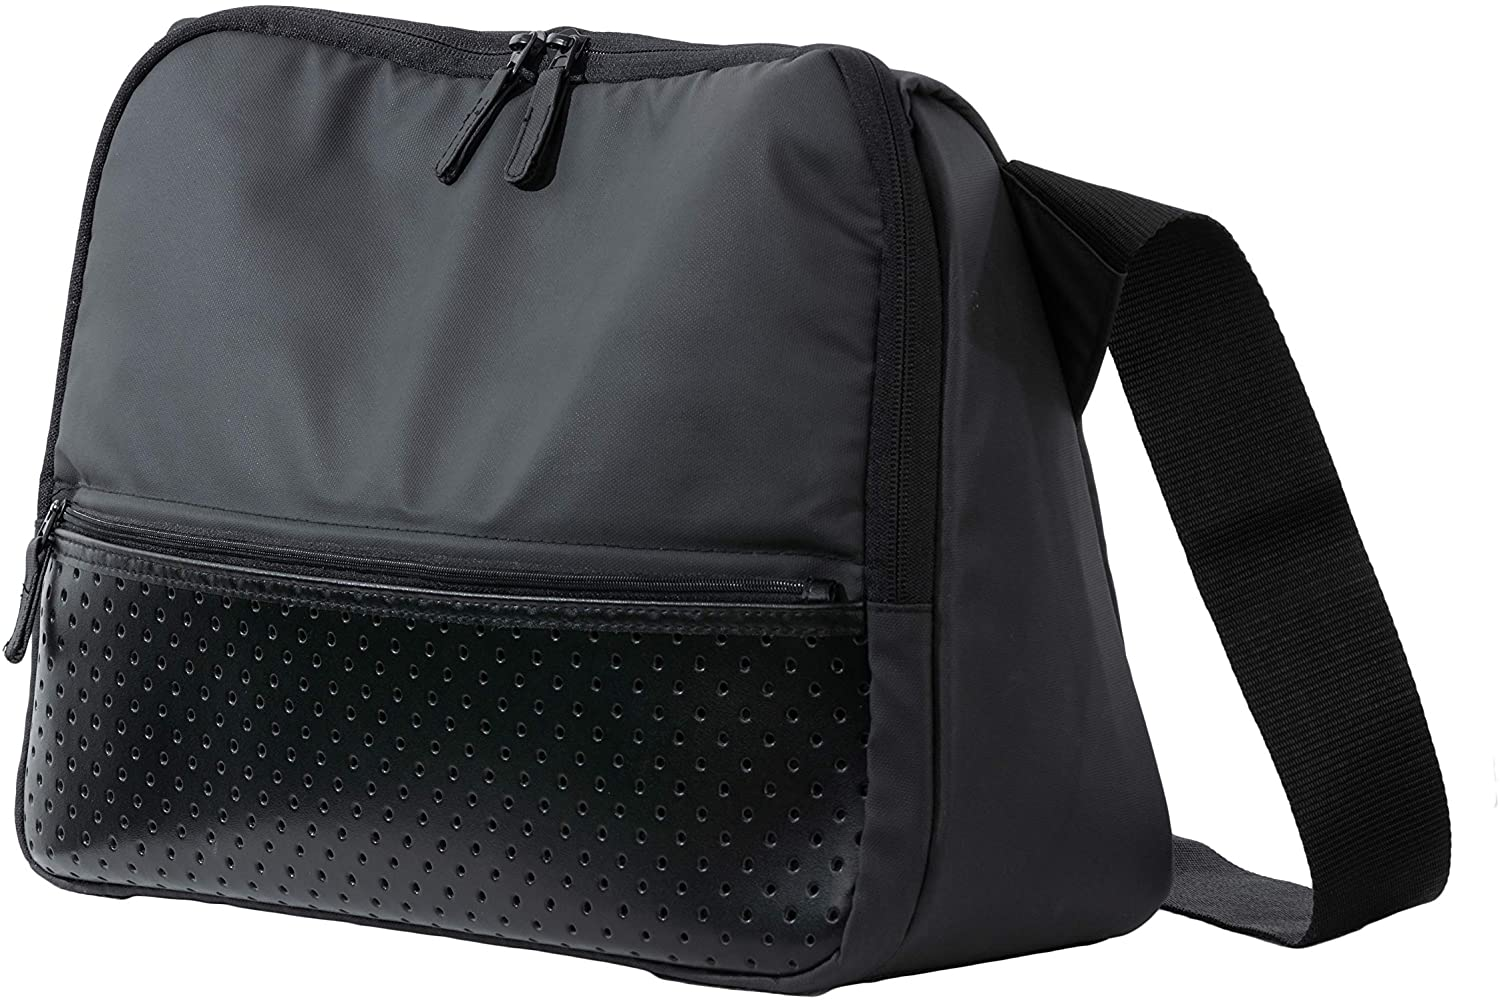 Triangle Commuter Laptop Messenger Bag - Stand Up and Hands-Free - Fits Macbook Pro Up to 15.6